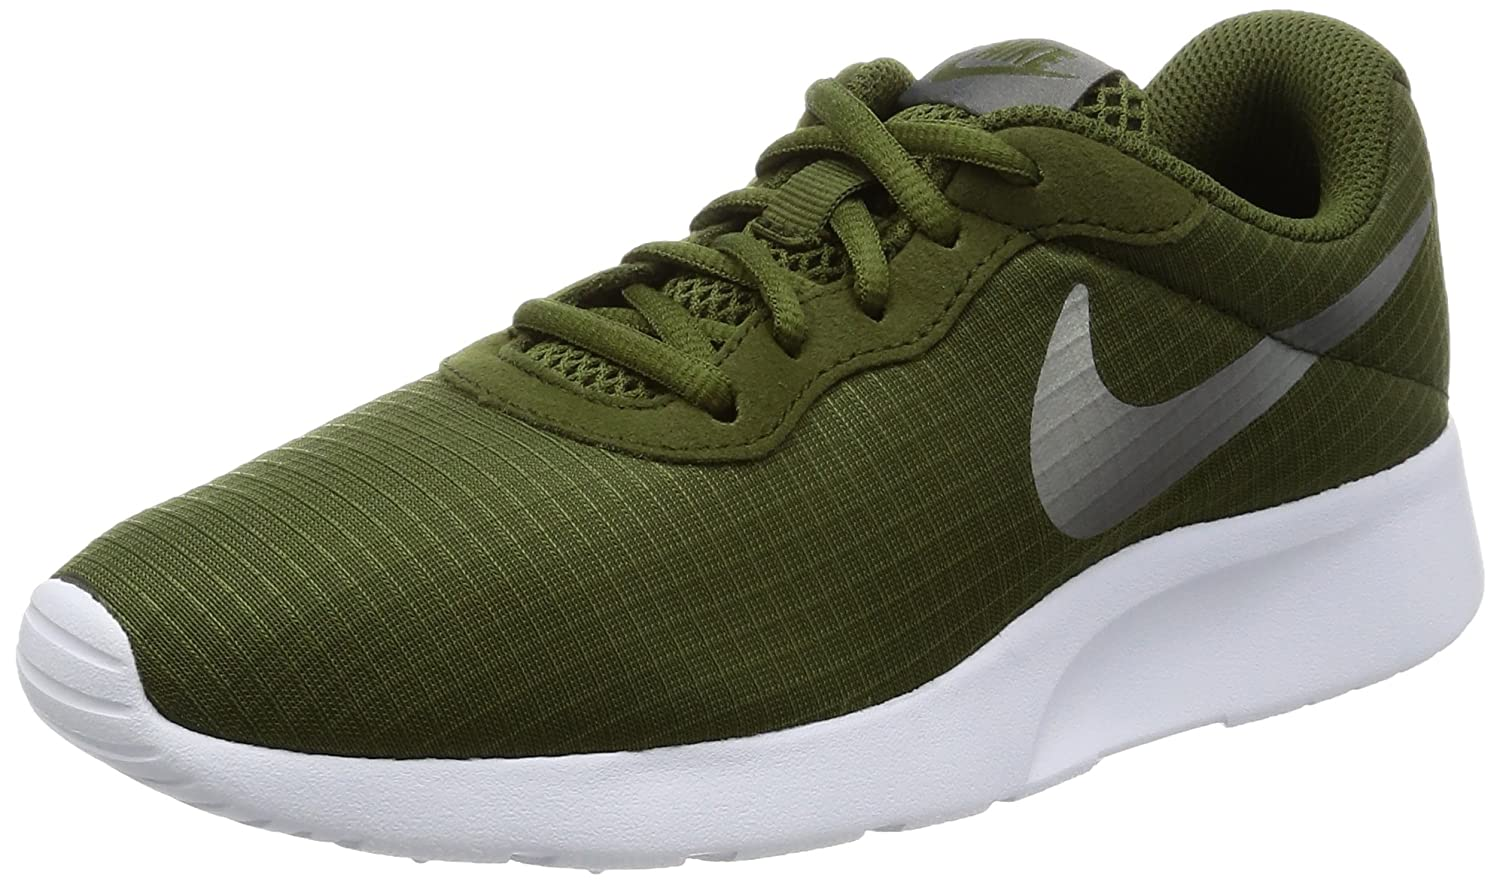 NIKE Women's Tanjun Running Shoes B008S869II 7.5 B(M) US|Green